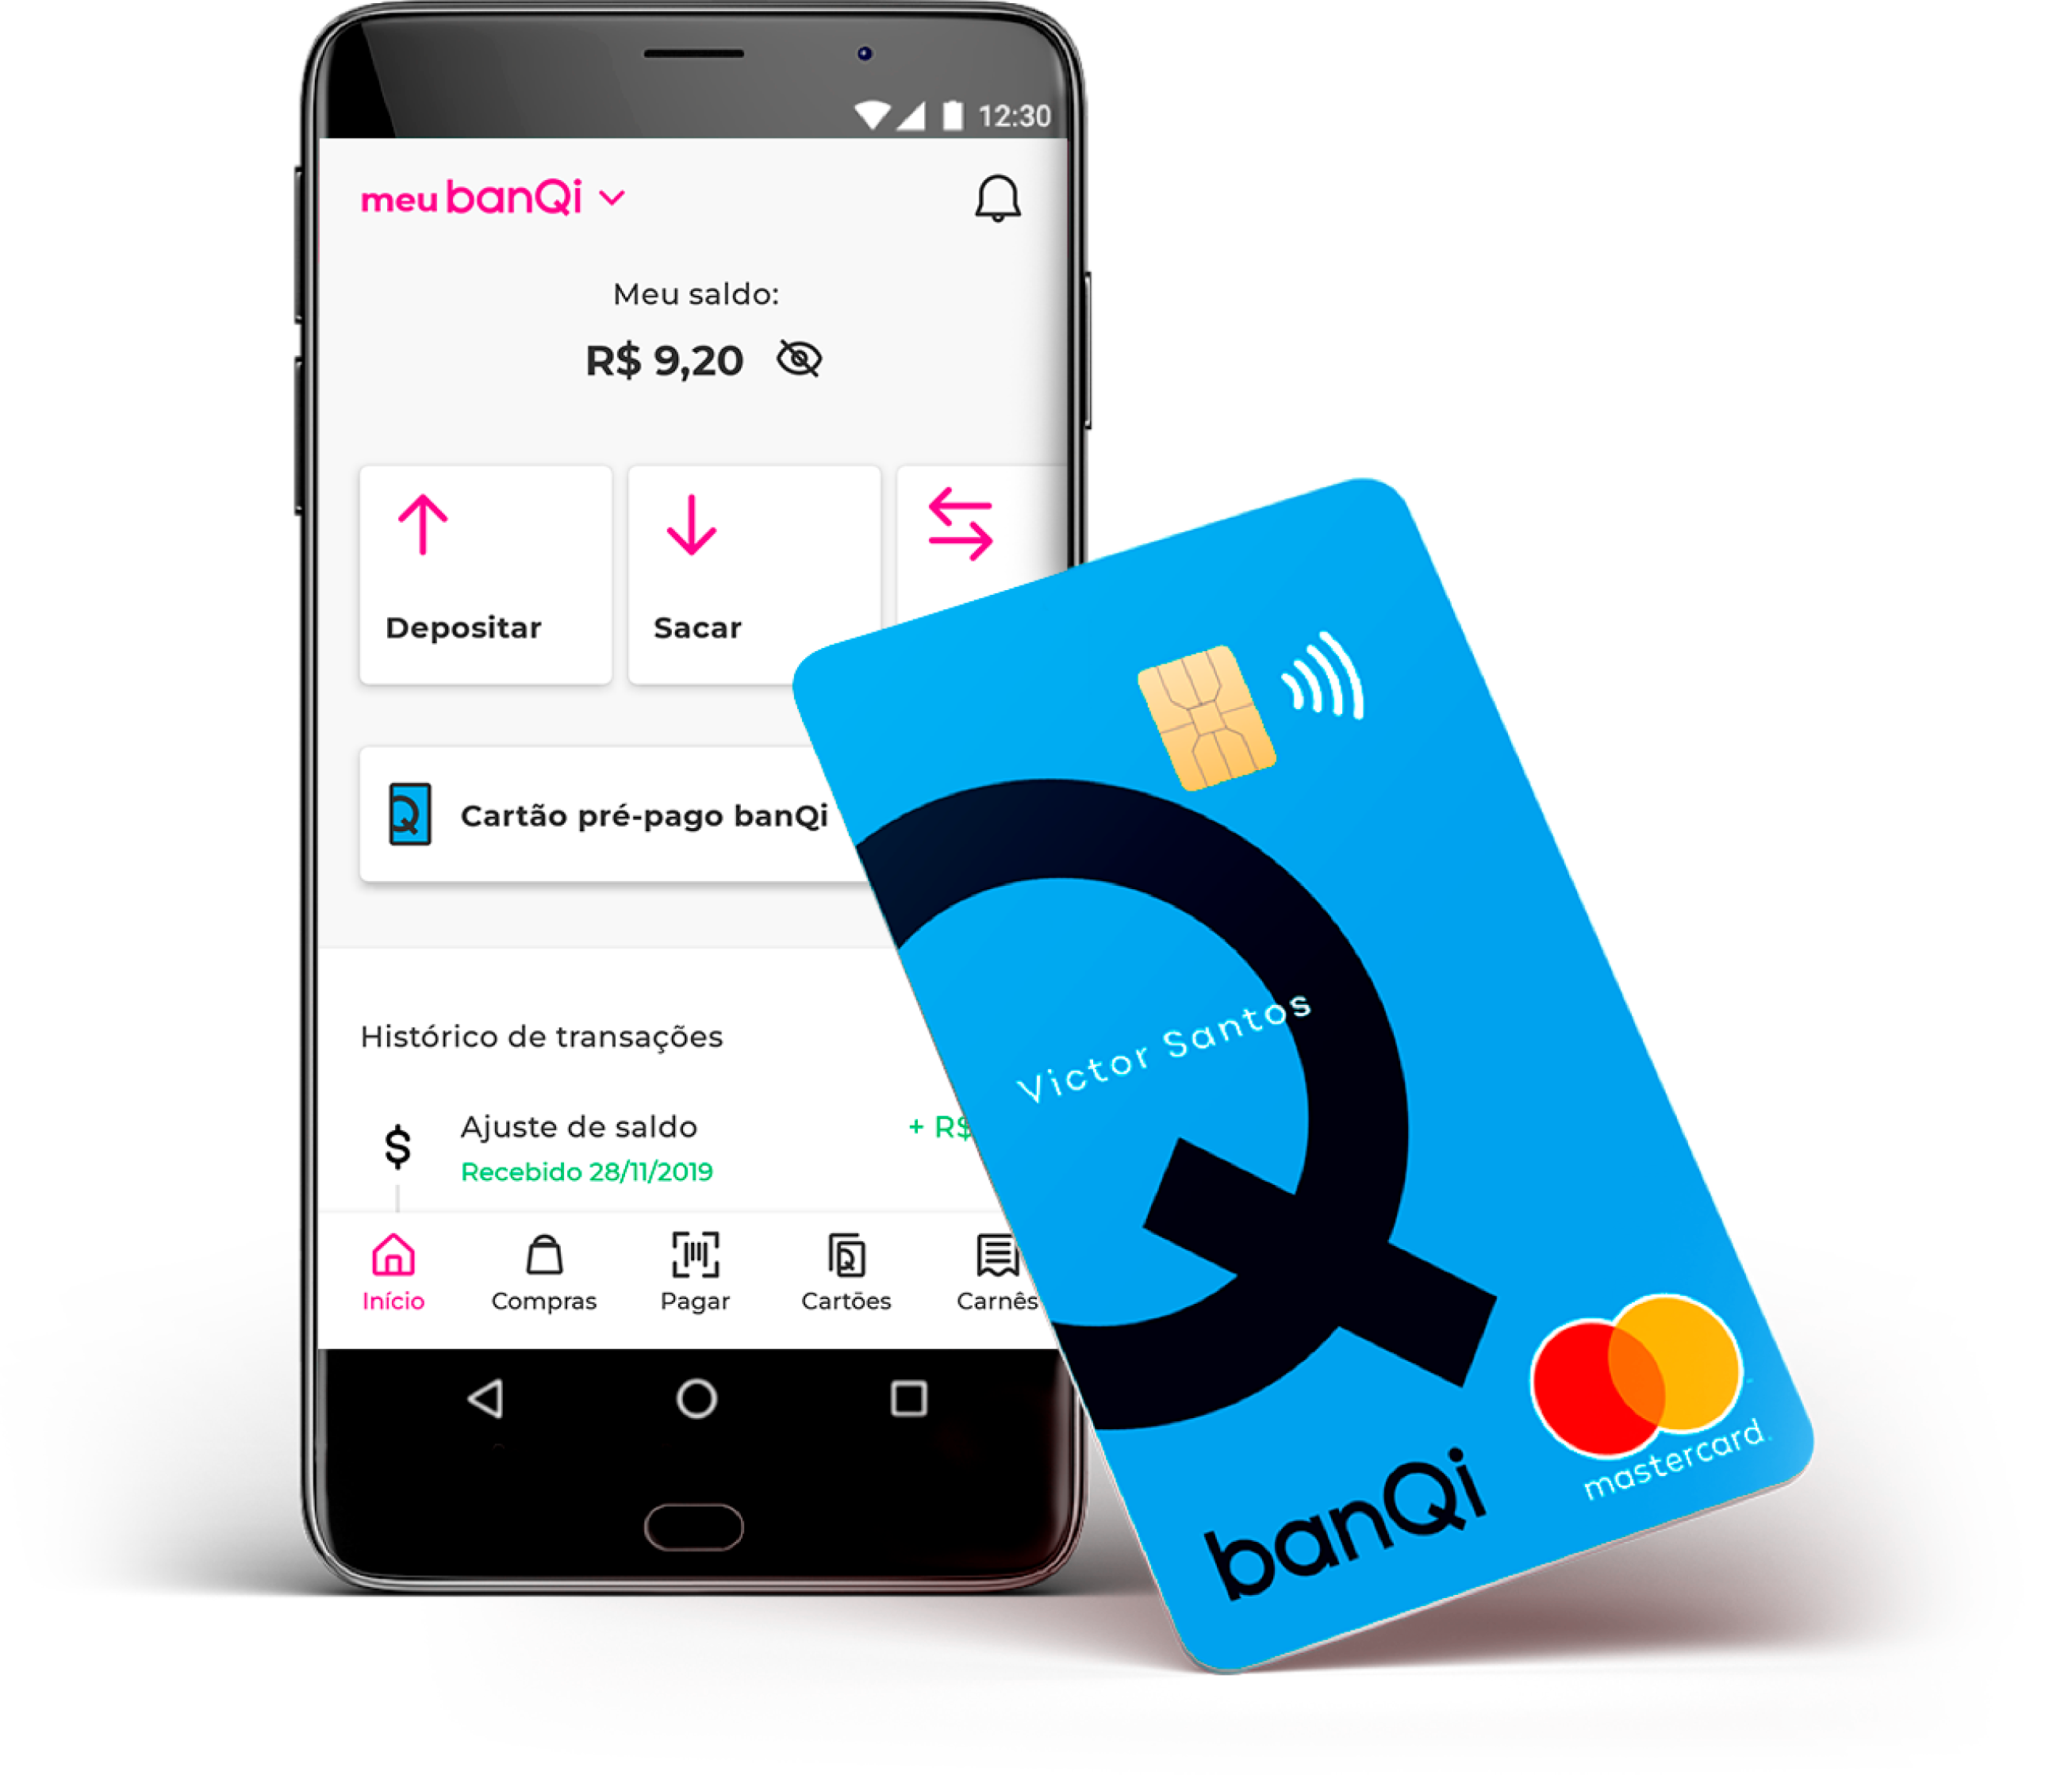 A banQi pre-paid card is next to a cellphone showing the banQi app and its options to withdraw, deposit, and transfer money